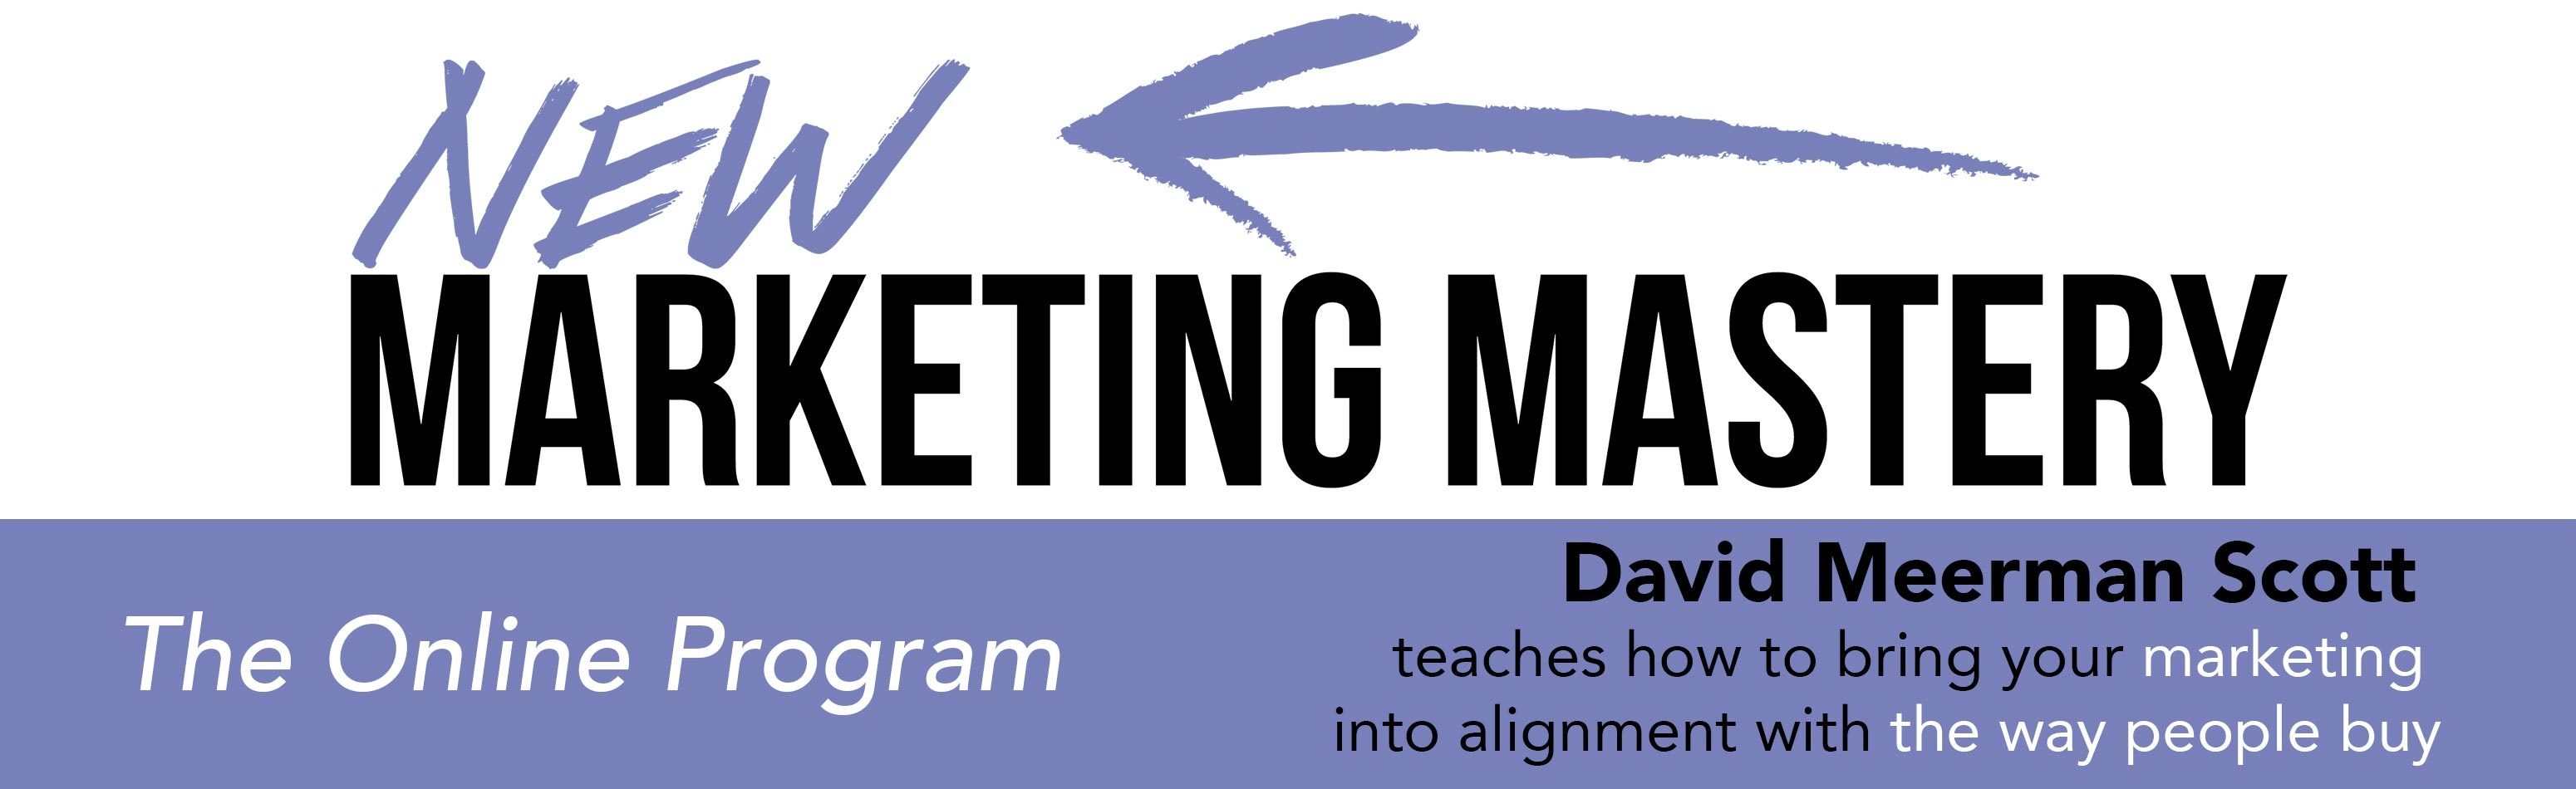 New Marketing Mastery